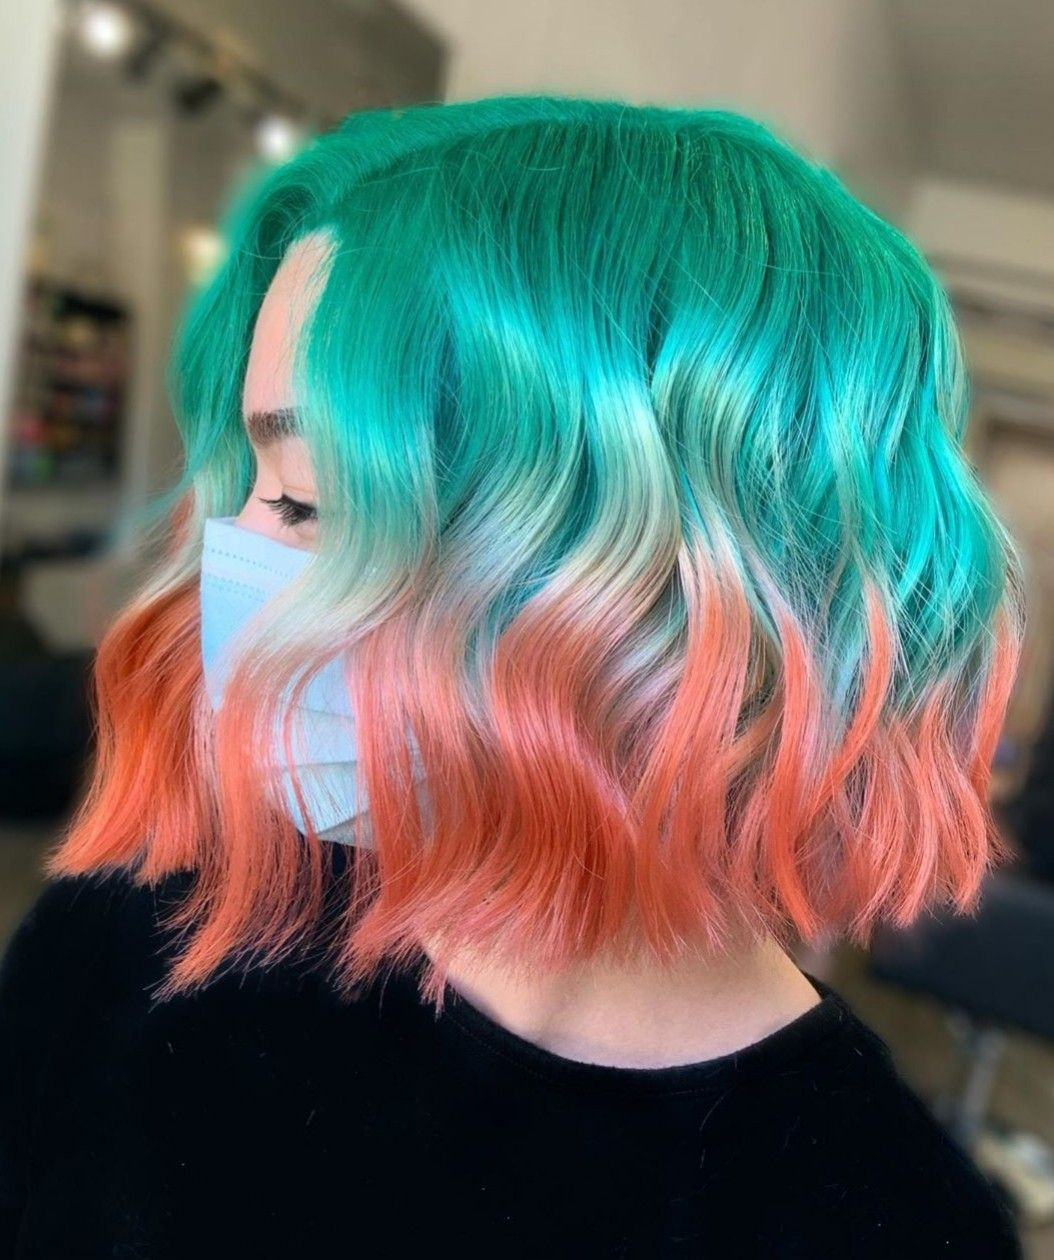 Pin By Kora 3923 On Hair Color Dyed Hair Hair Styles Split Dyed Hair